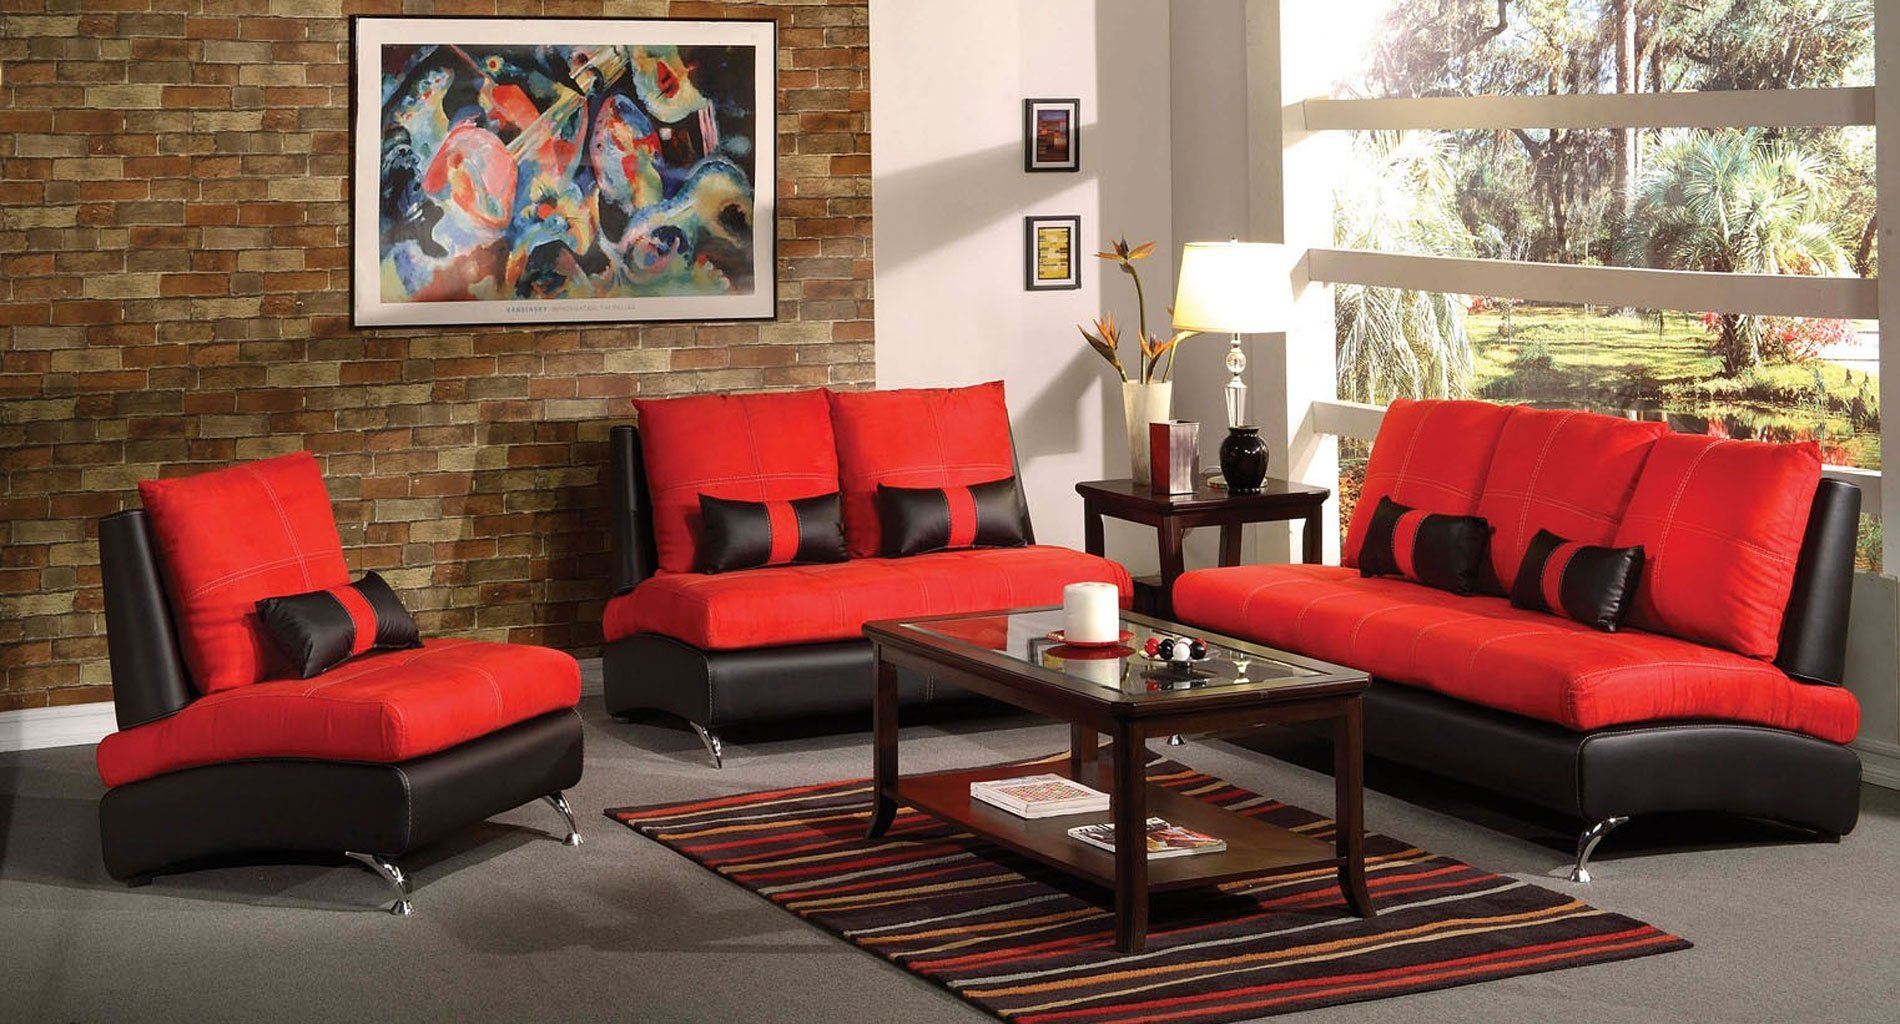 Jolie Living Room Set (Red And Black) By Acme Furniture